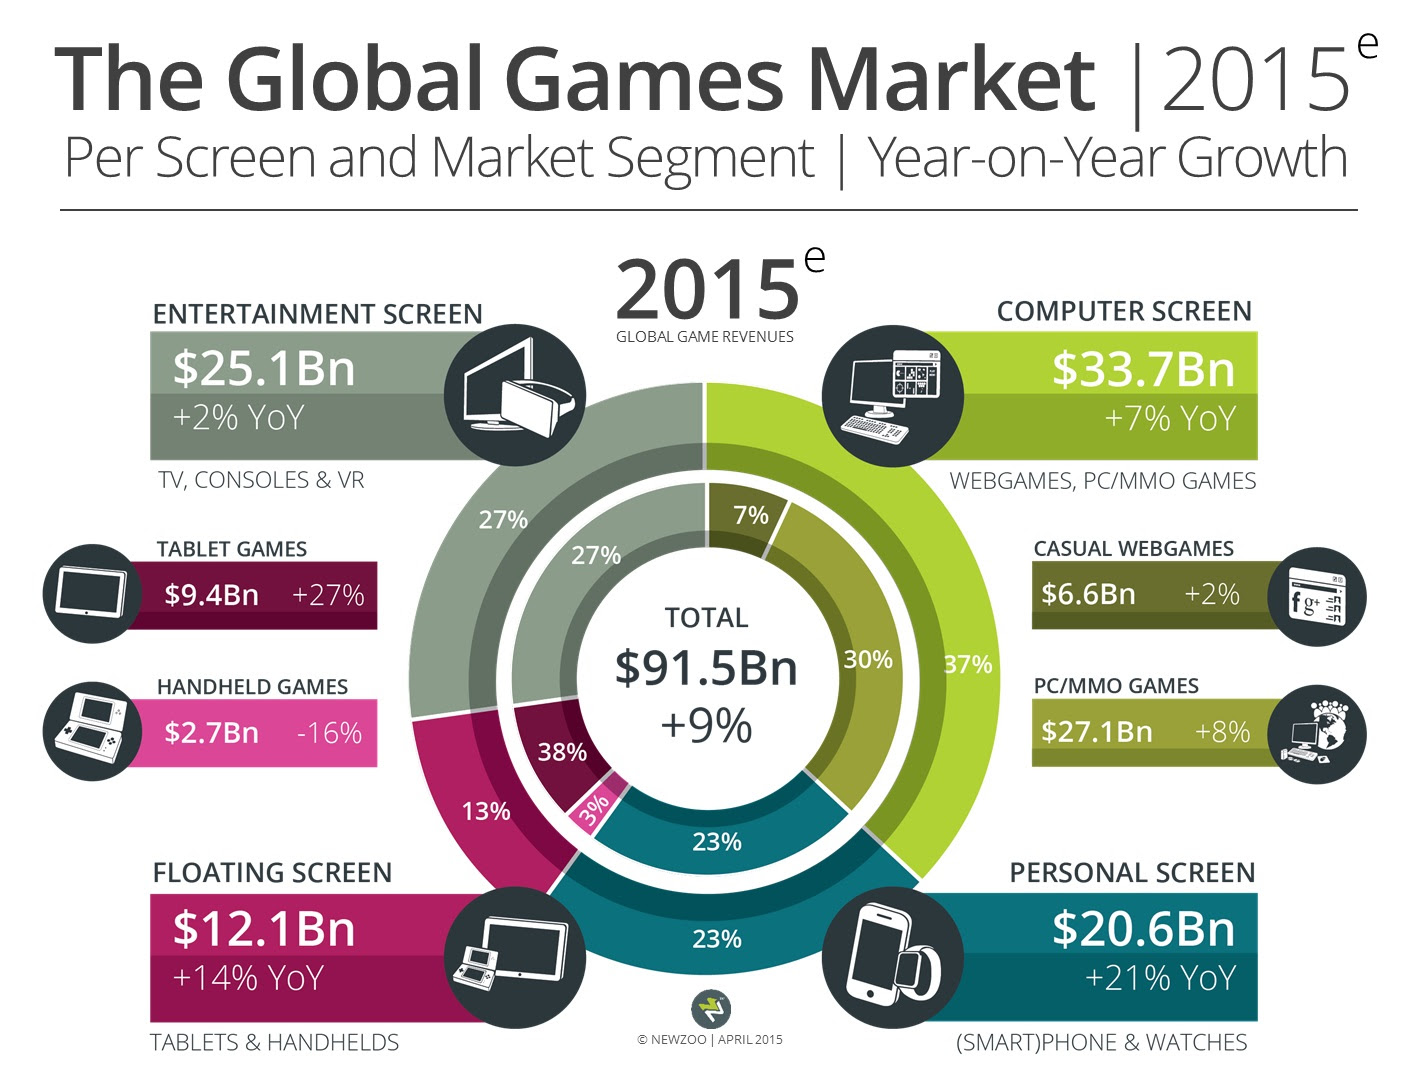 From http://www.gamesindustry.biz/articles/2015-04-22-gaming-will-hit-usd91-5-billion-this-year-newzoo